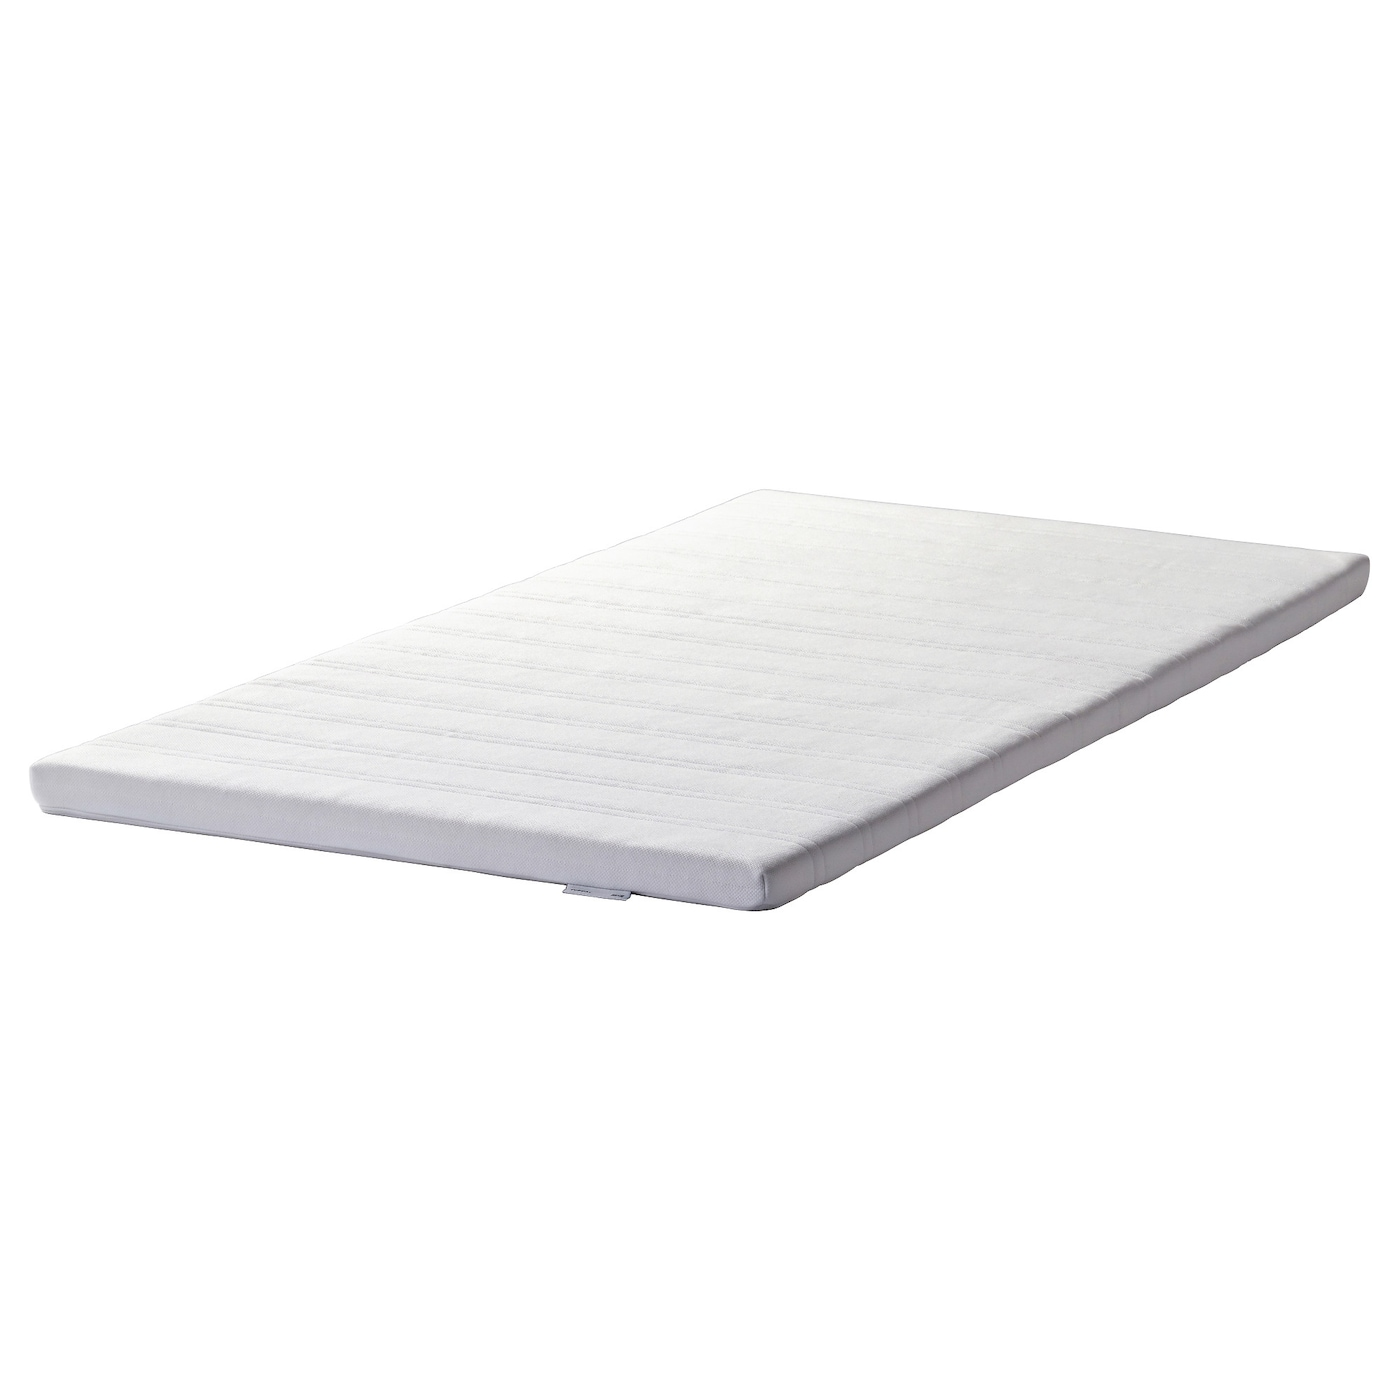 tuddal mattress topper white 90x200 cm ikea. Black Bedroom Furniture Sets. Home Design Ideas